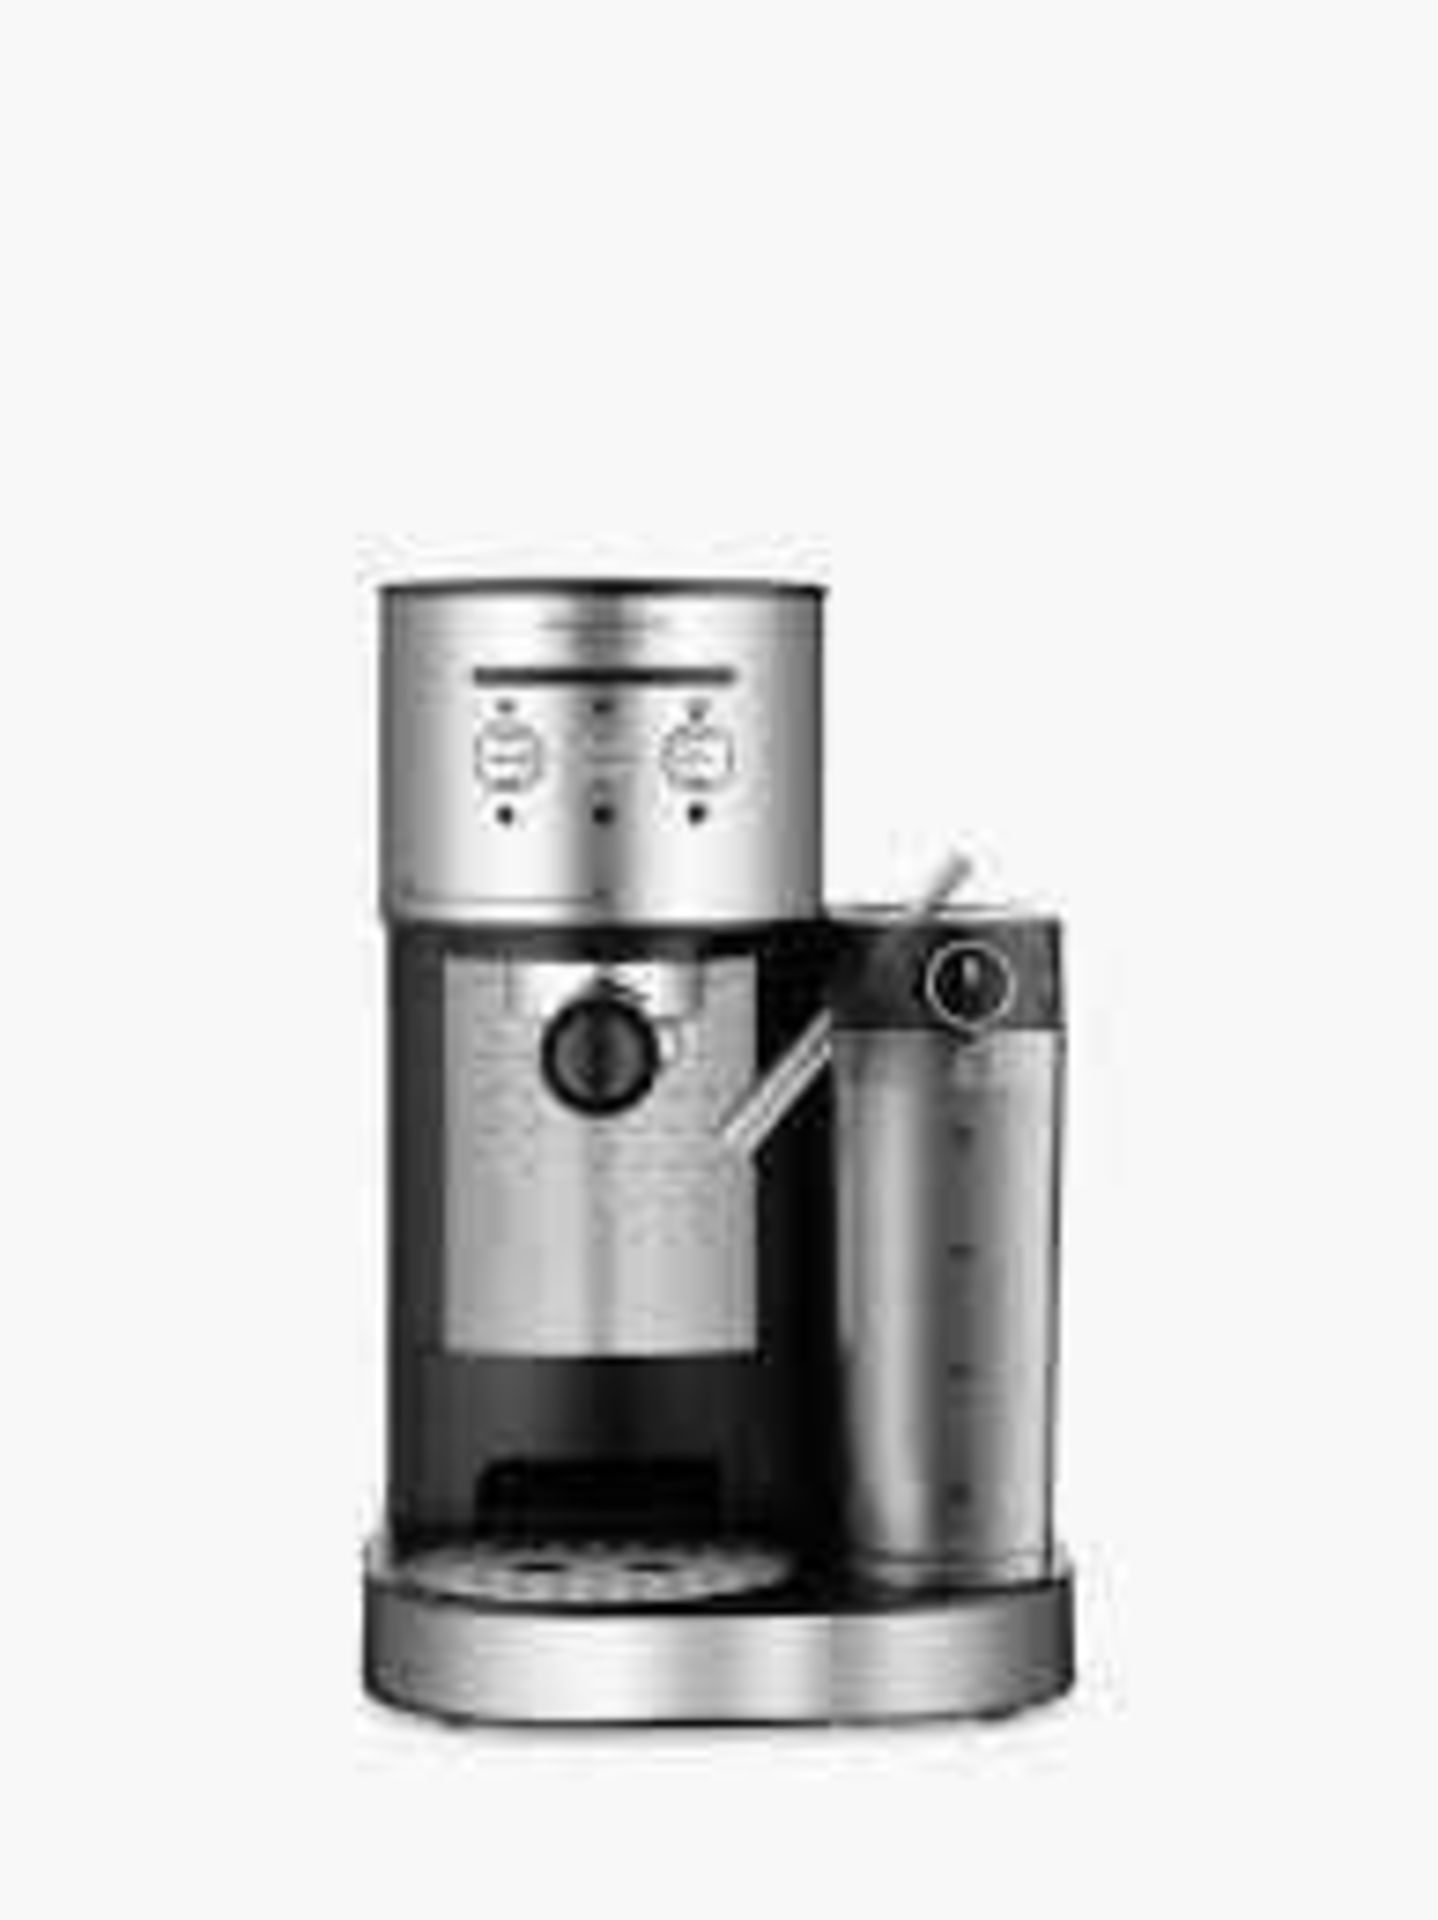 Lot 130 - RRP £100 Boxed John Lewis Pump Espresso Coffee Machine With Integrated Milk System